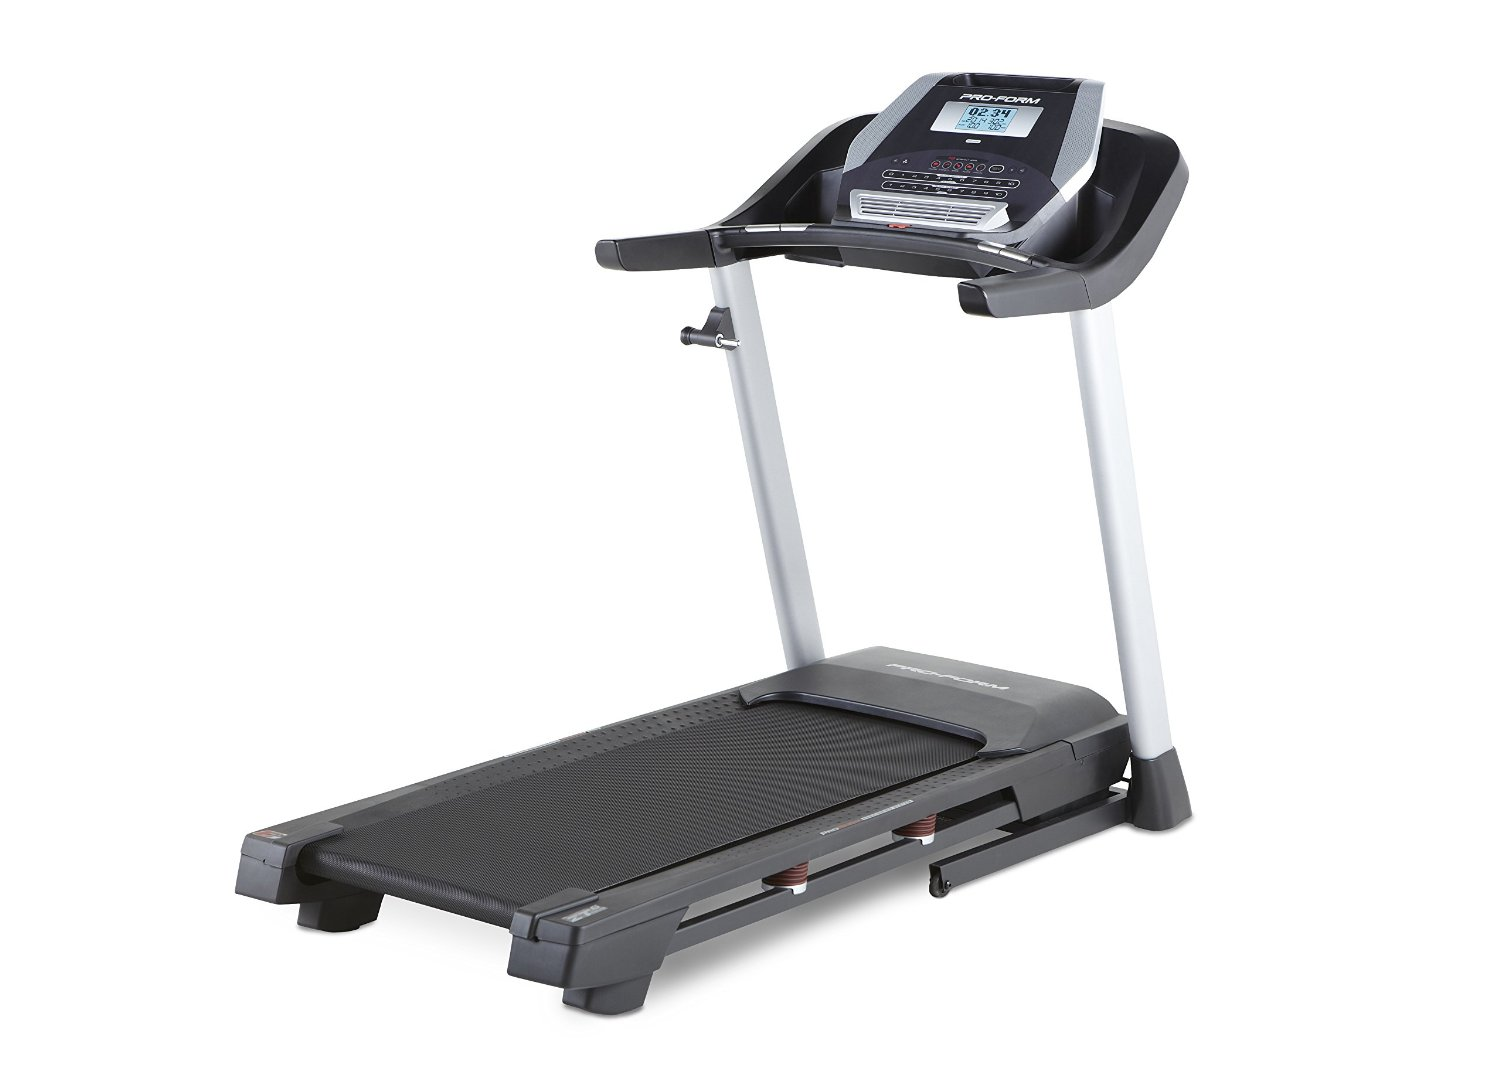 Proform zt6 treadmill machine review latest fitness for Proform zt6 treadmill